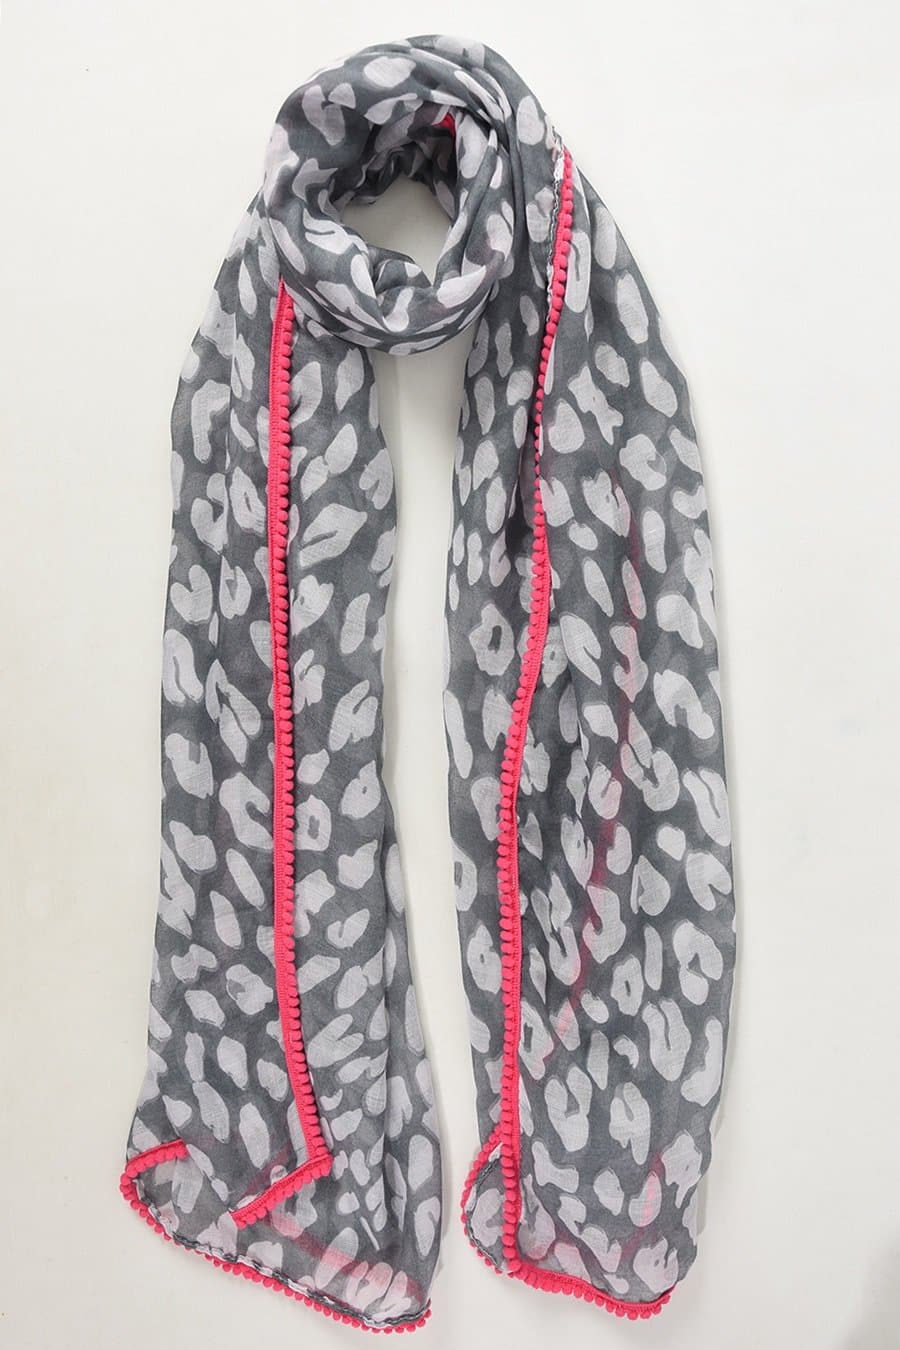 Abstract Animal and Neon Scarf - Aurina Ltd